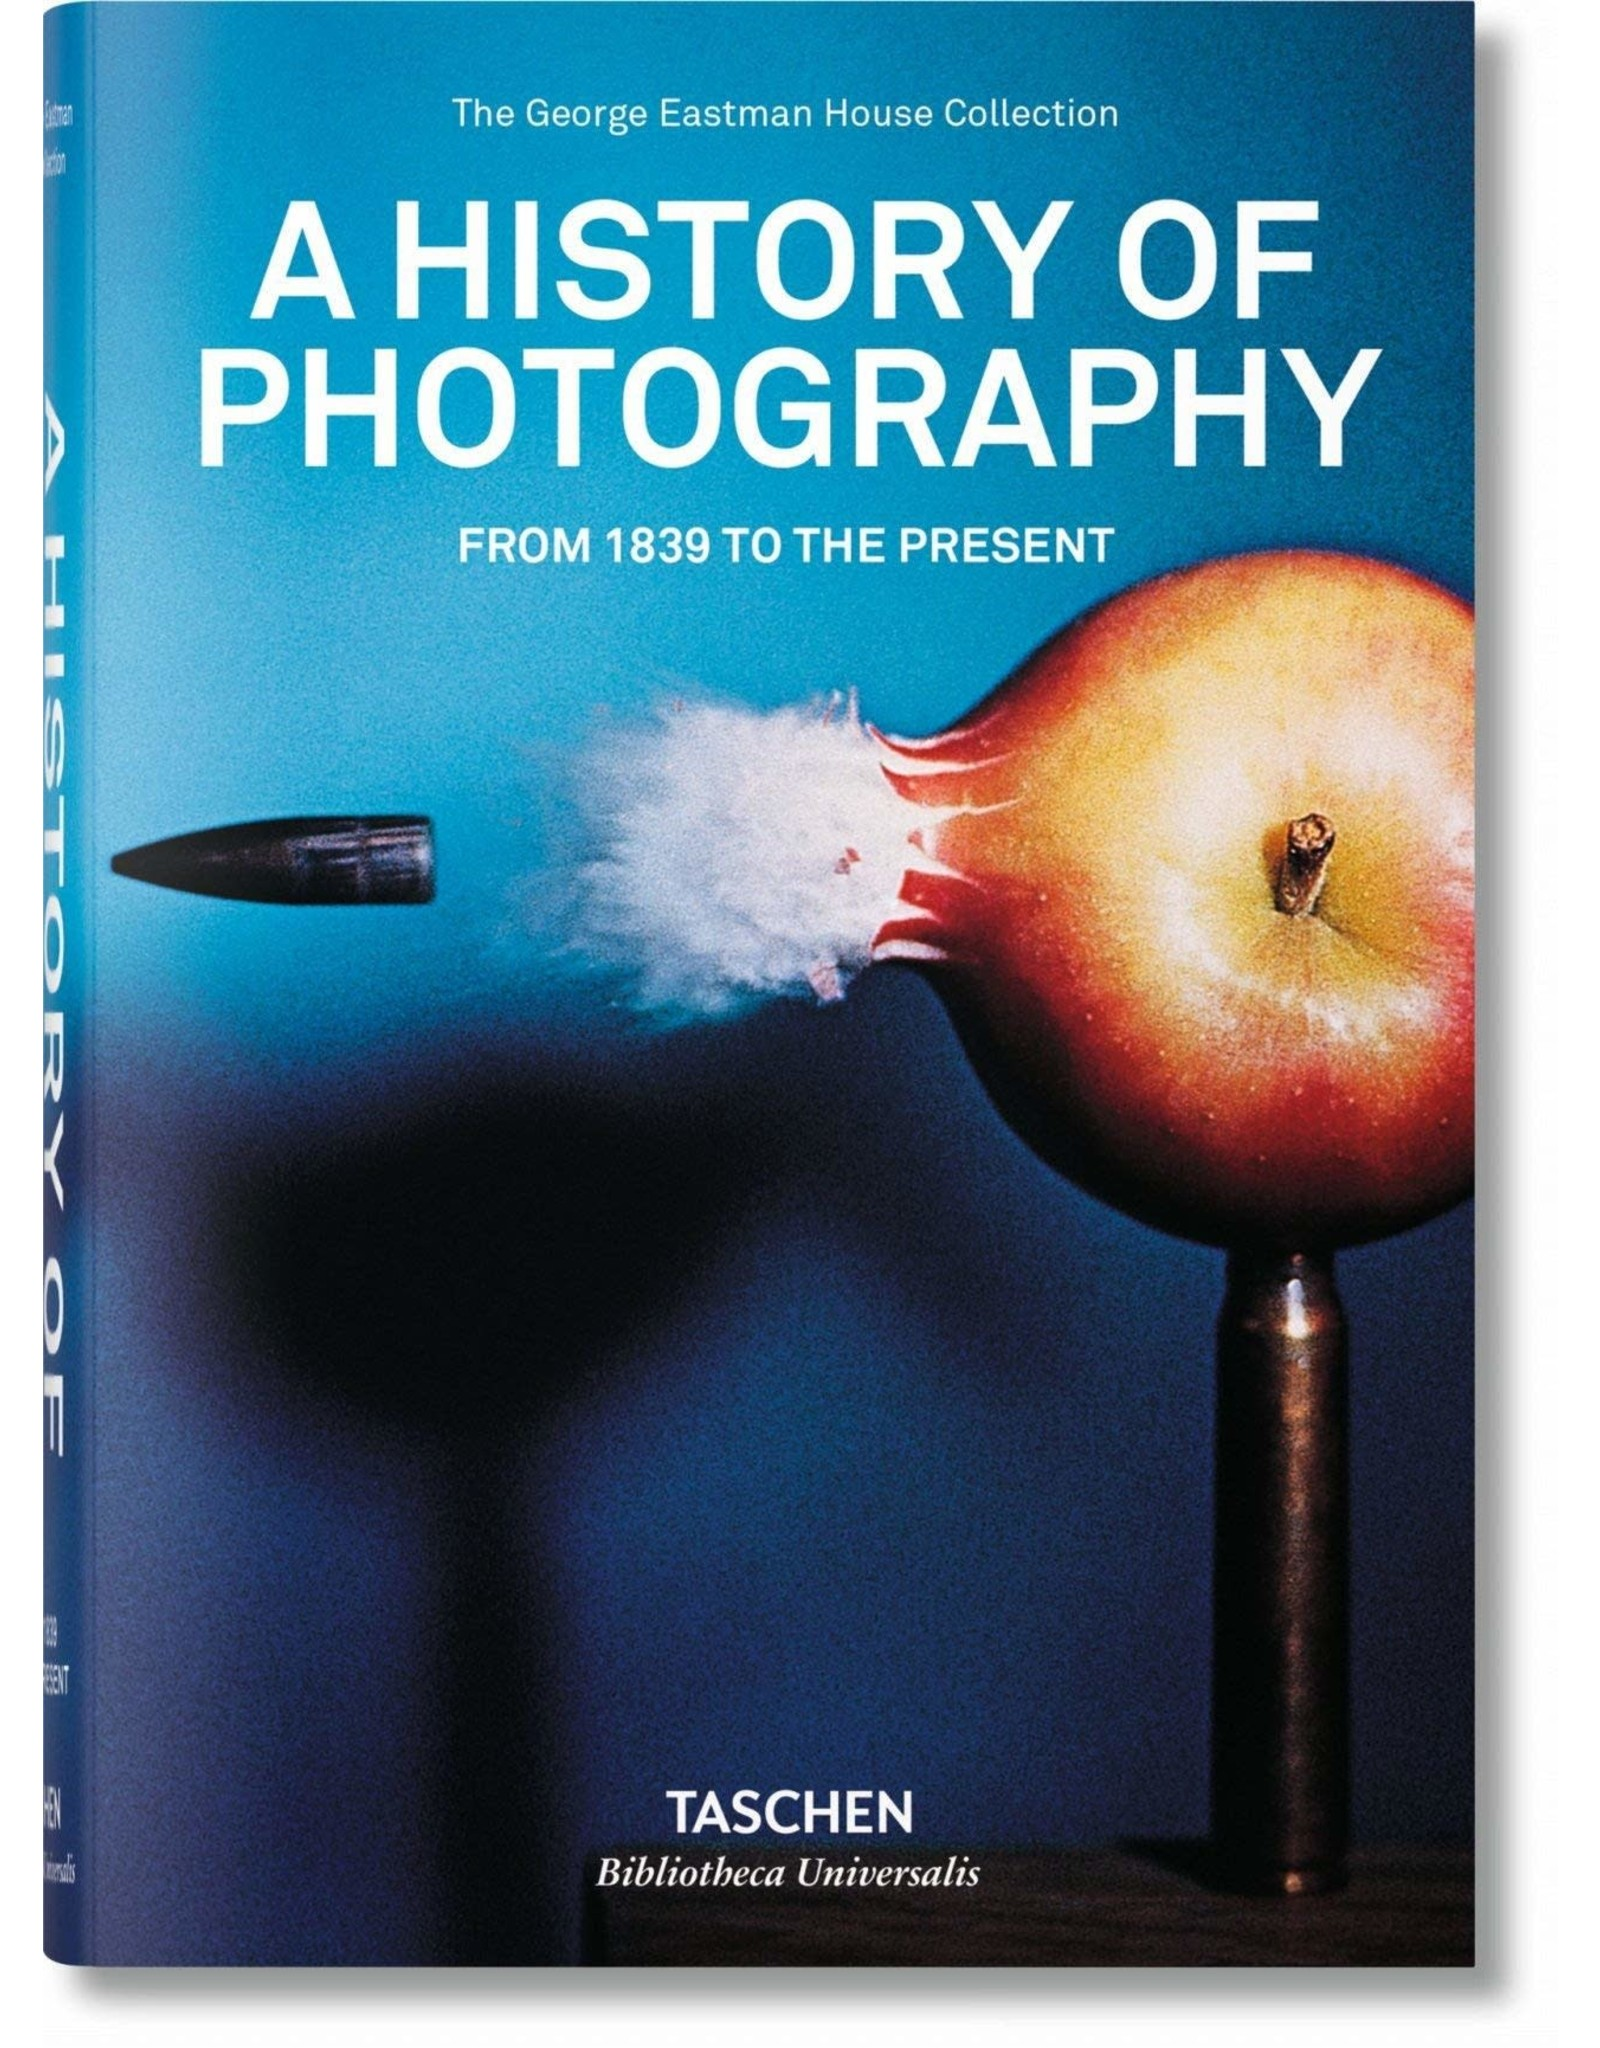 A History of Photography: From 1839 to the Present